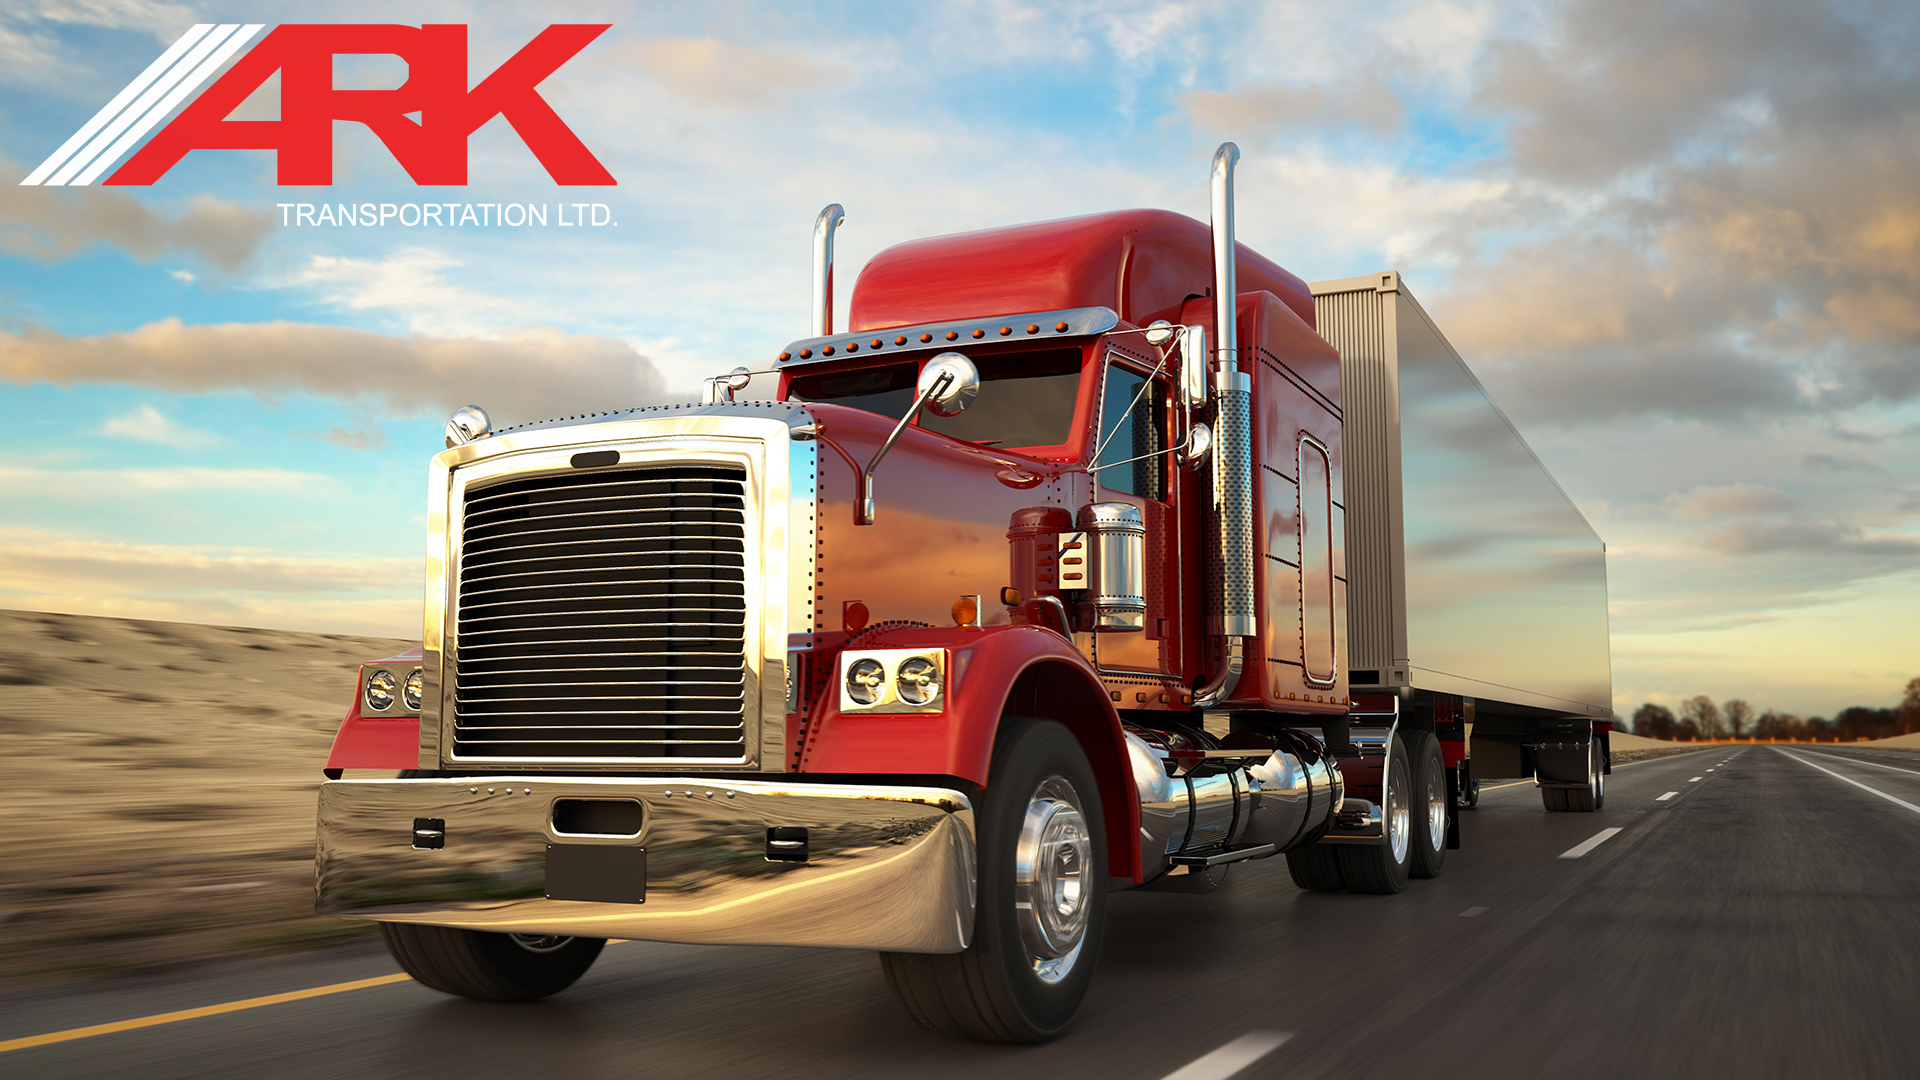 Ark Transportation | Why Are Truckload Prices so High in 2018?